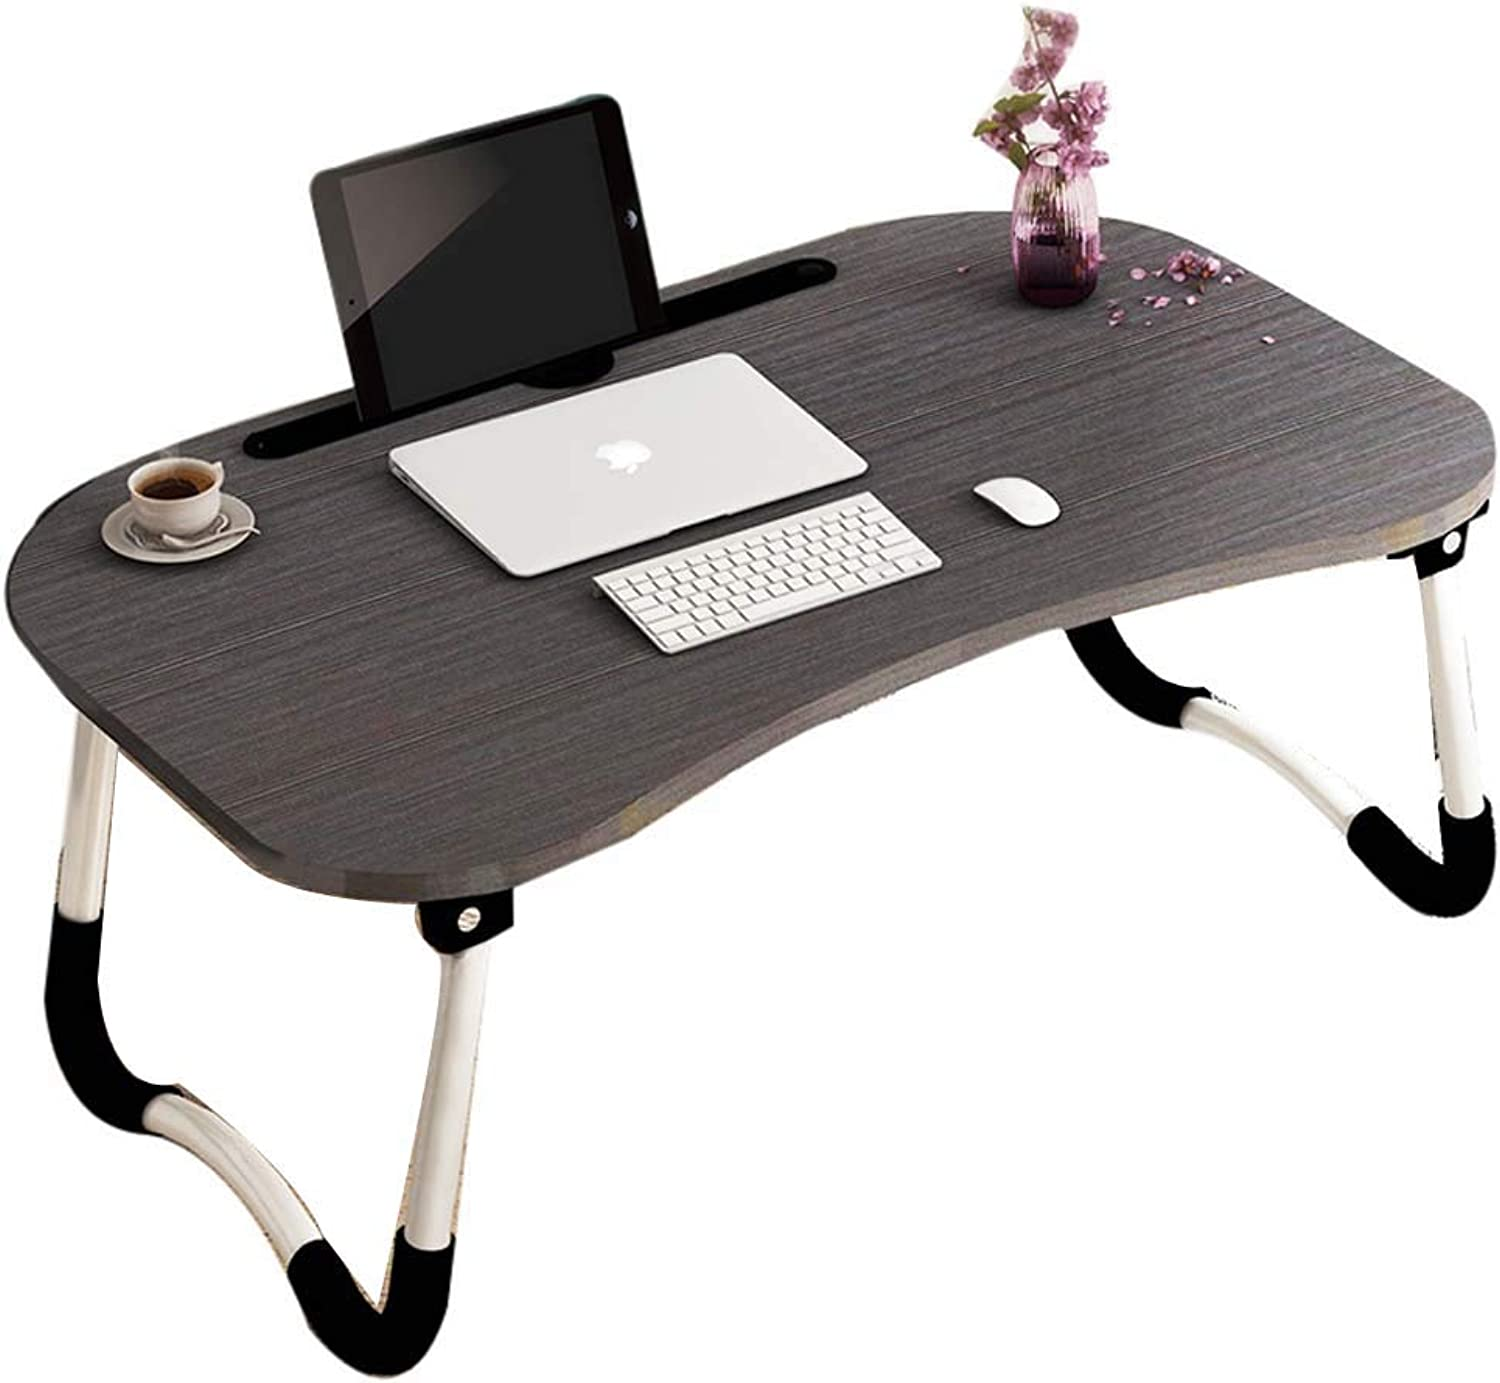 Yhz@ Laptop Table Bed Foldable Lazy Table, Dormitory Study Desk Small Table for Table Bedroom - Foldable -60cm40cm28cm